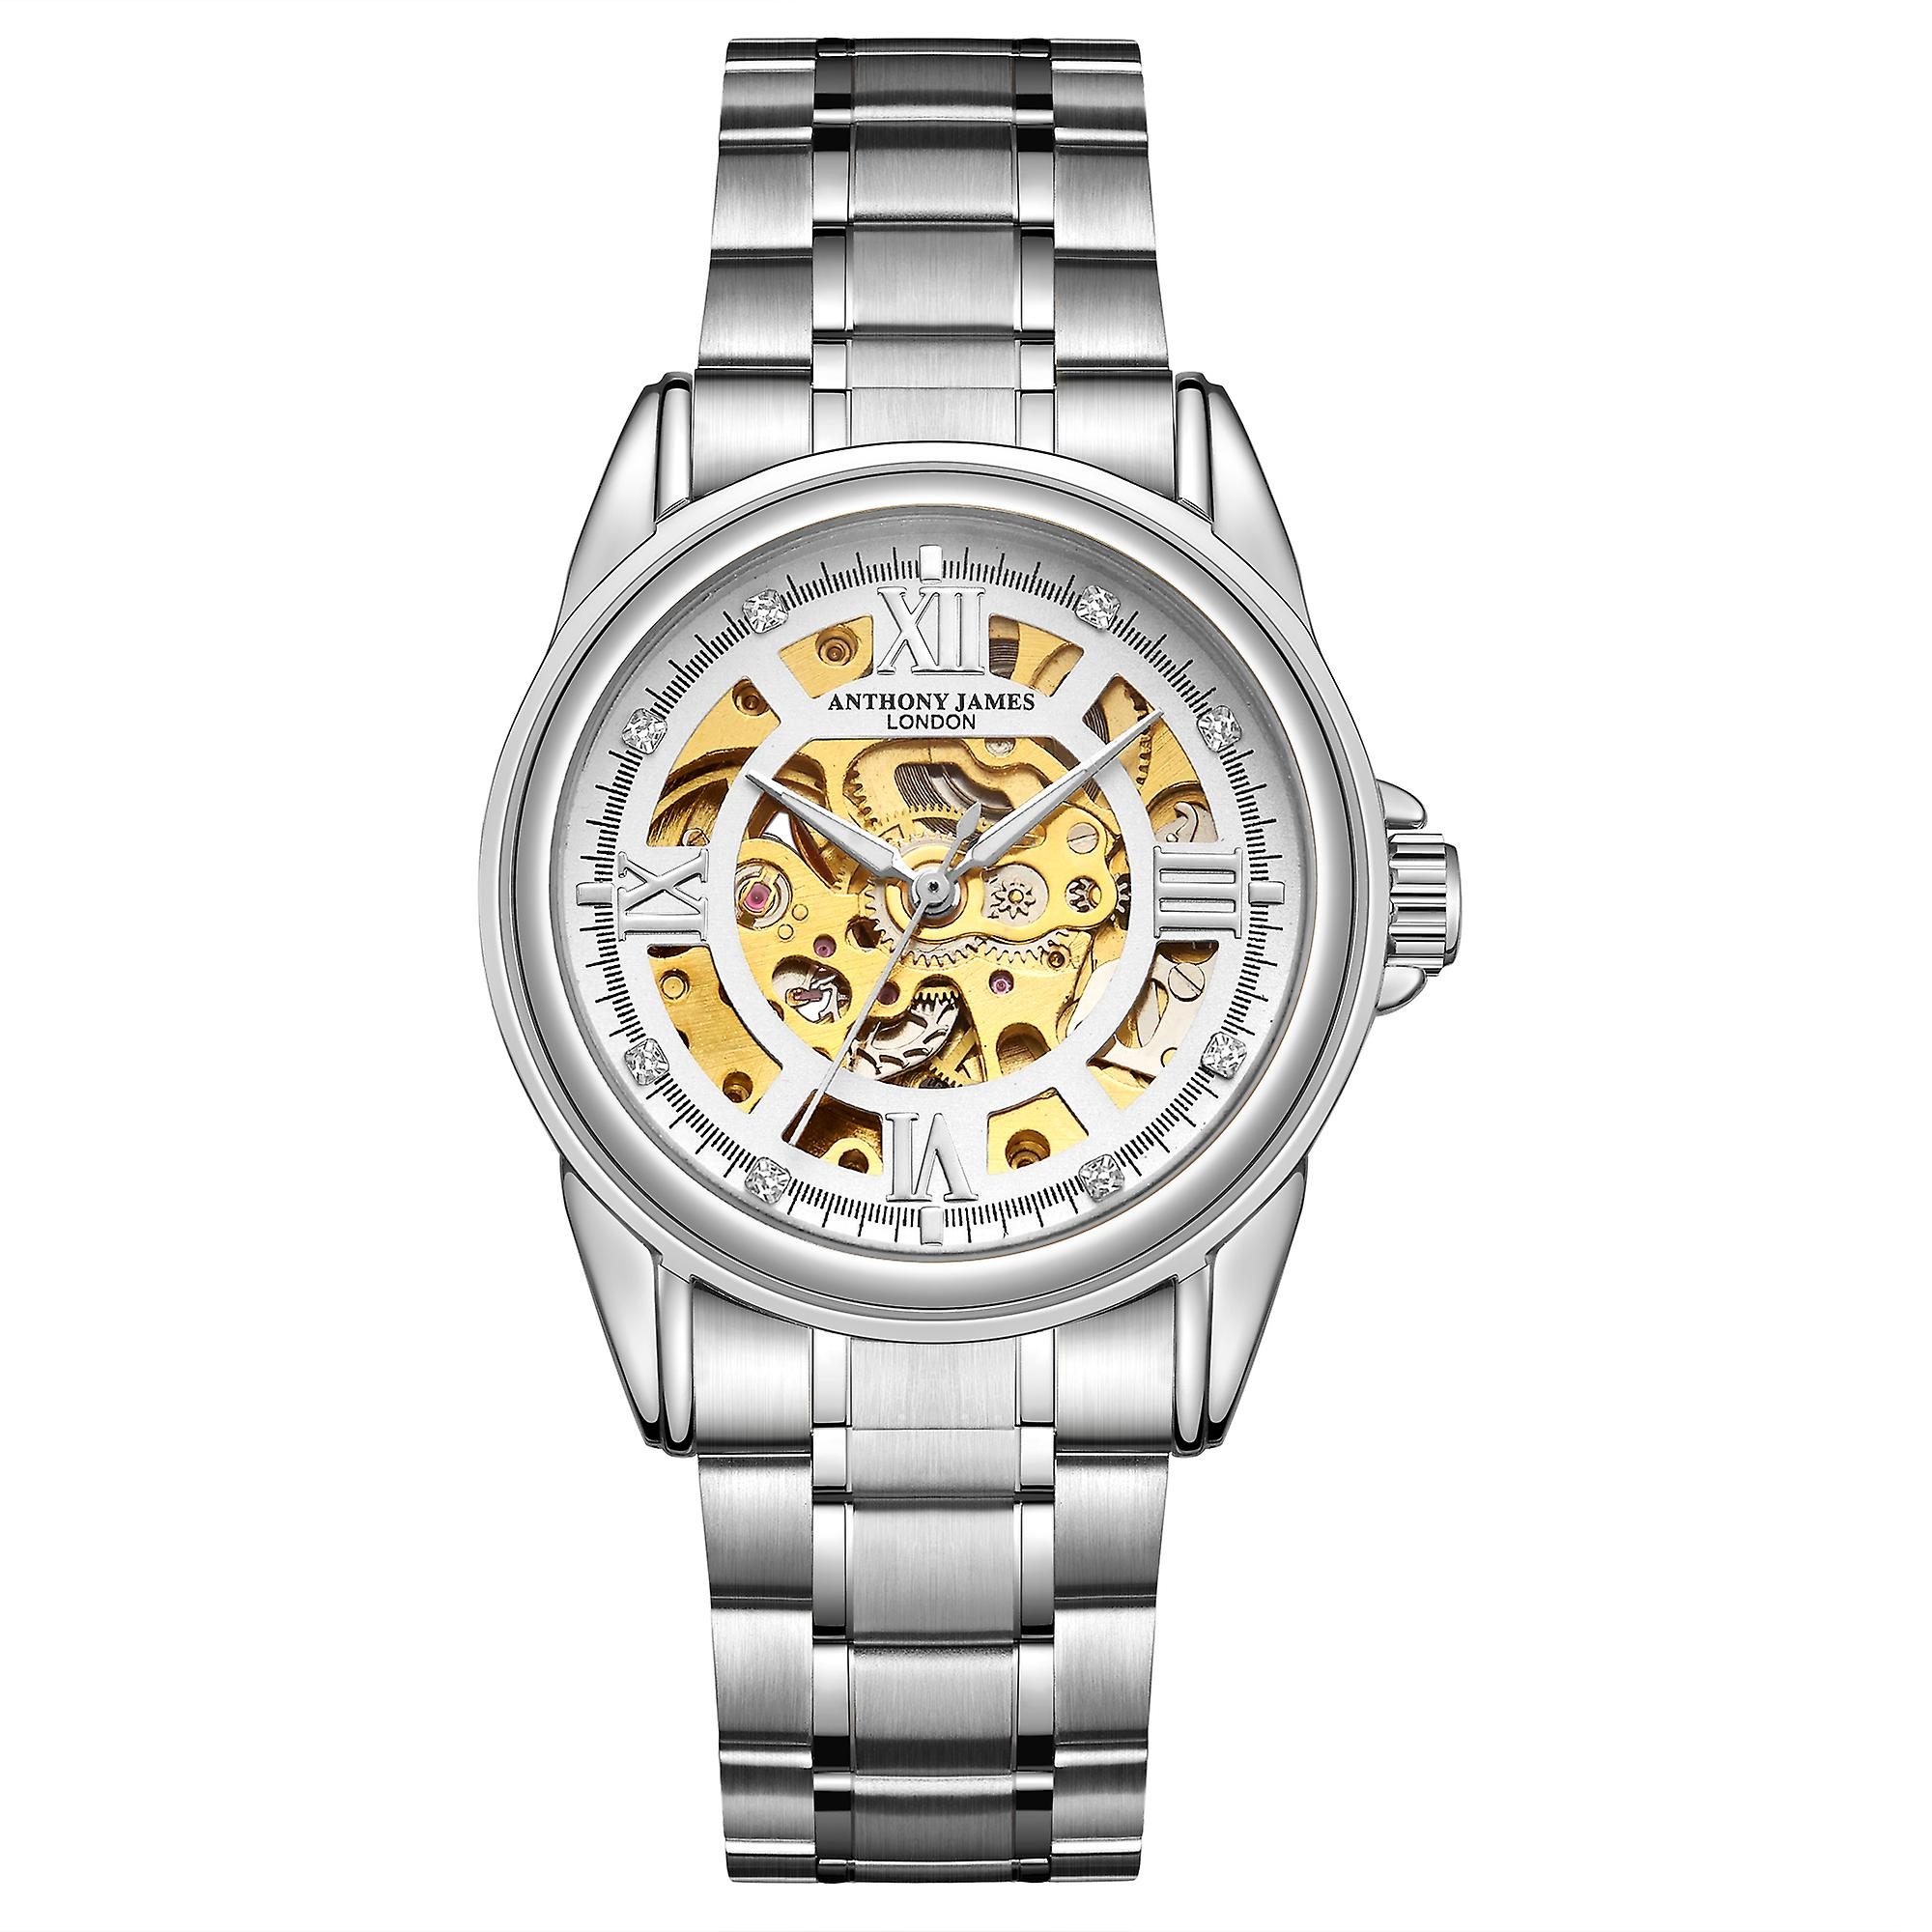 Hand Assembled Anthony James Limited Edition Skeleton Automatic Steel & White Mens Watch – 5 Year Warranty